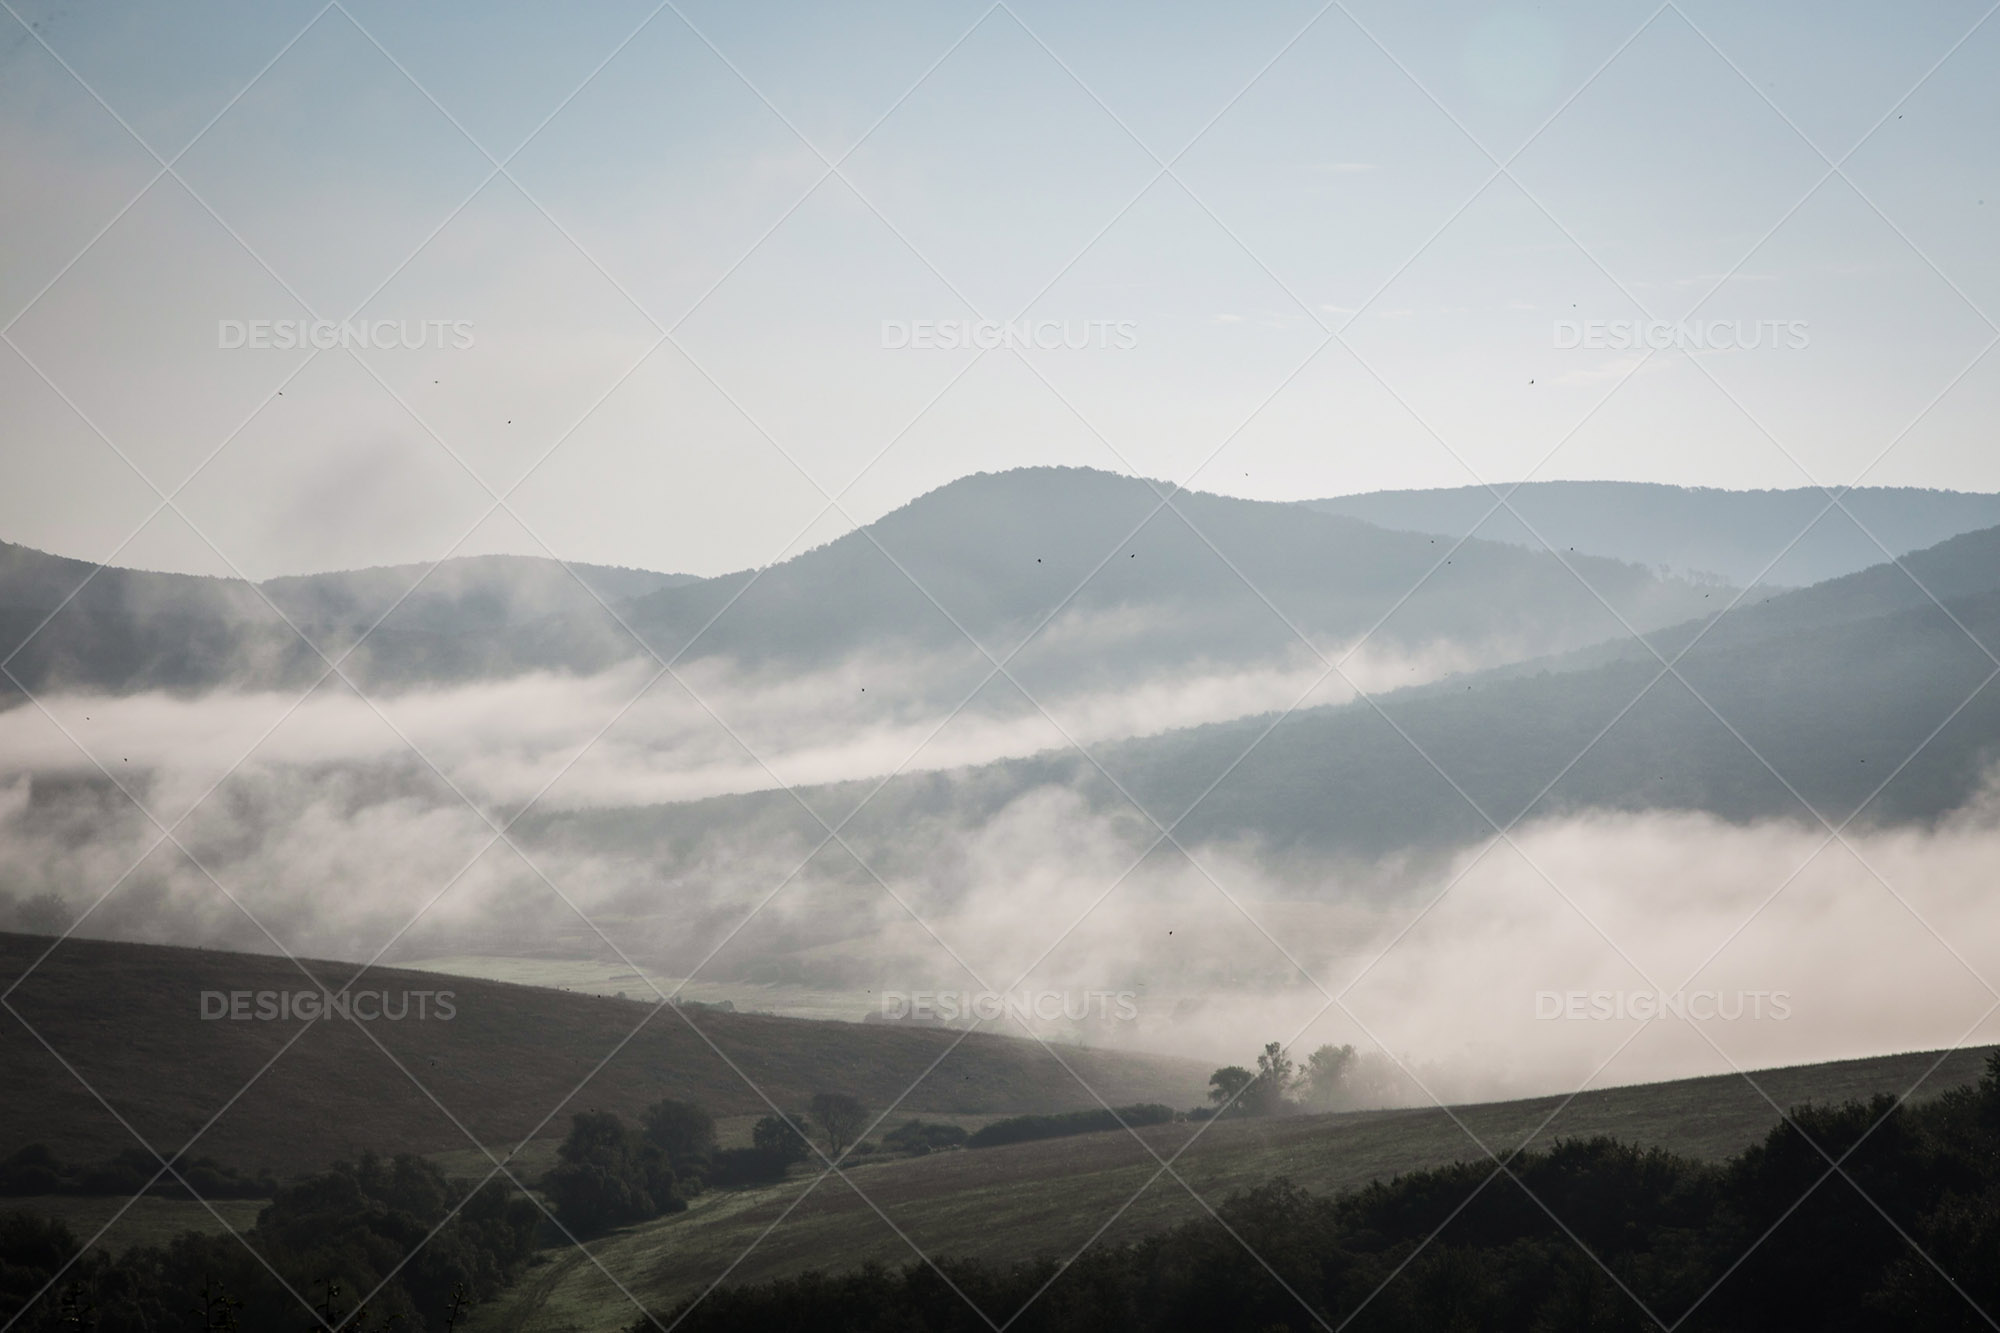 Mist Clearing In The Valleys Around Holloko In Hungary 6